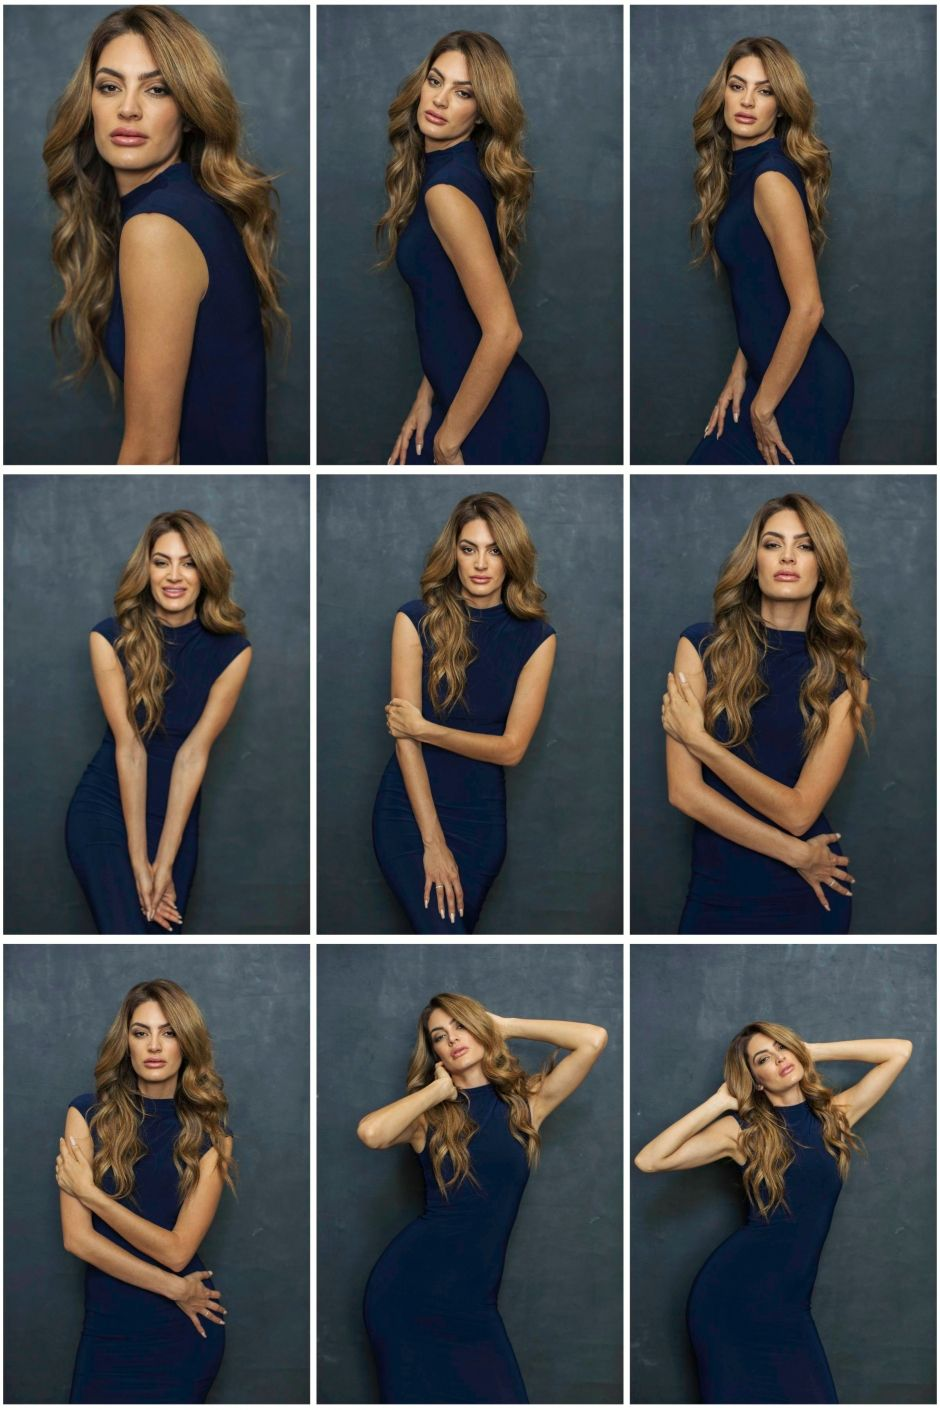 women style guide for posing, lighting and brand identity.